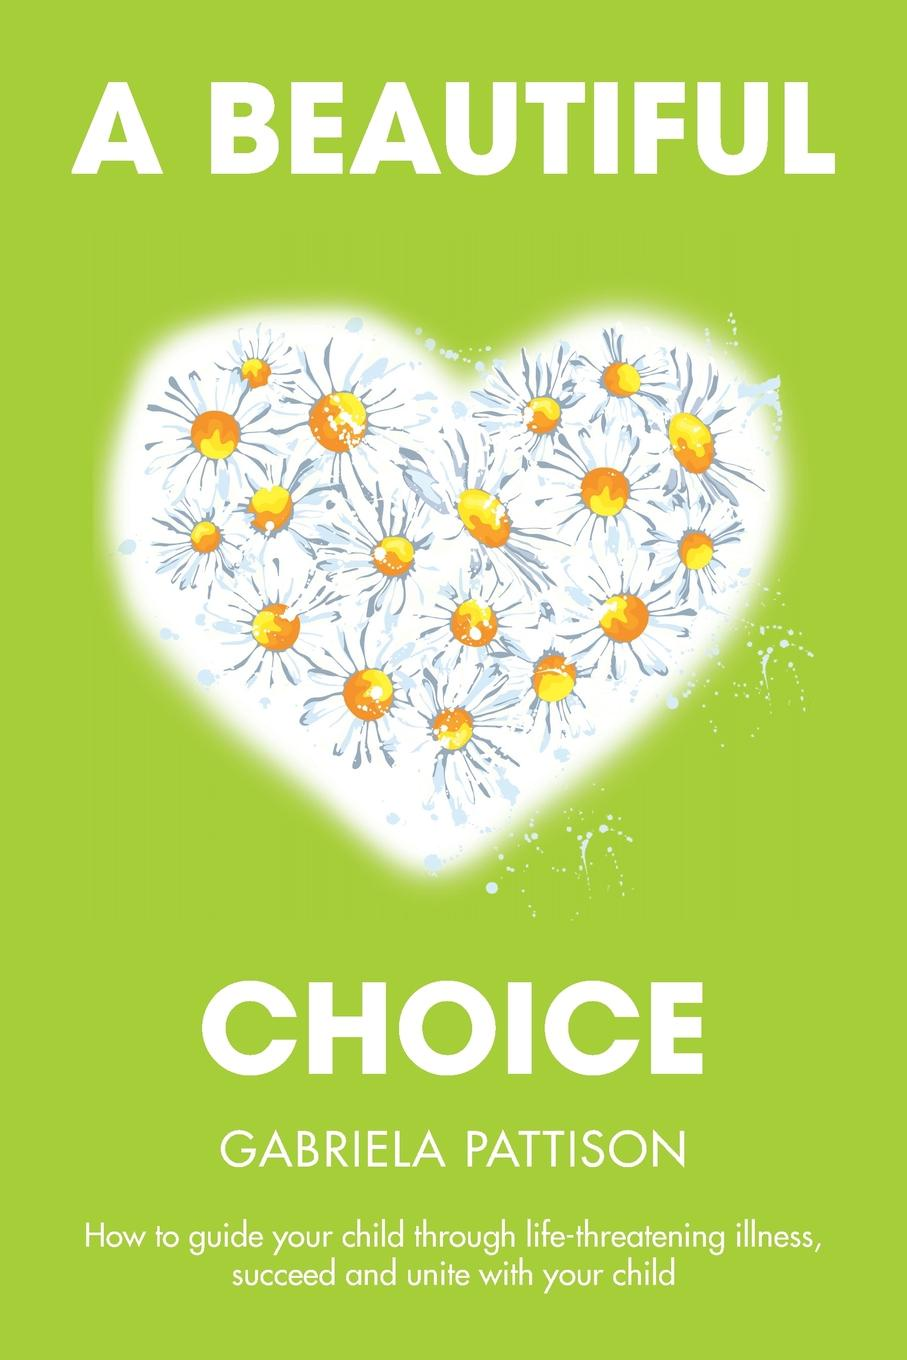 Gabriela Pattison A Beautiful Choice. How to Guide Your Child Through Life-Threatening Illness, Succeed and Connect With Your Child frederic brandt 10 minutes 10 years your definitive guide to a beautiful and youthful